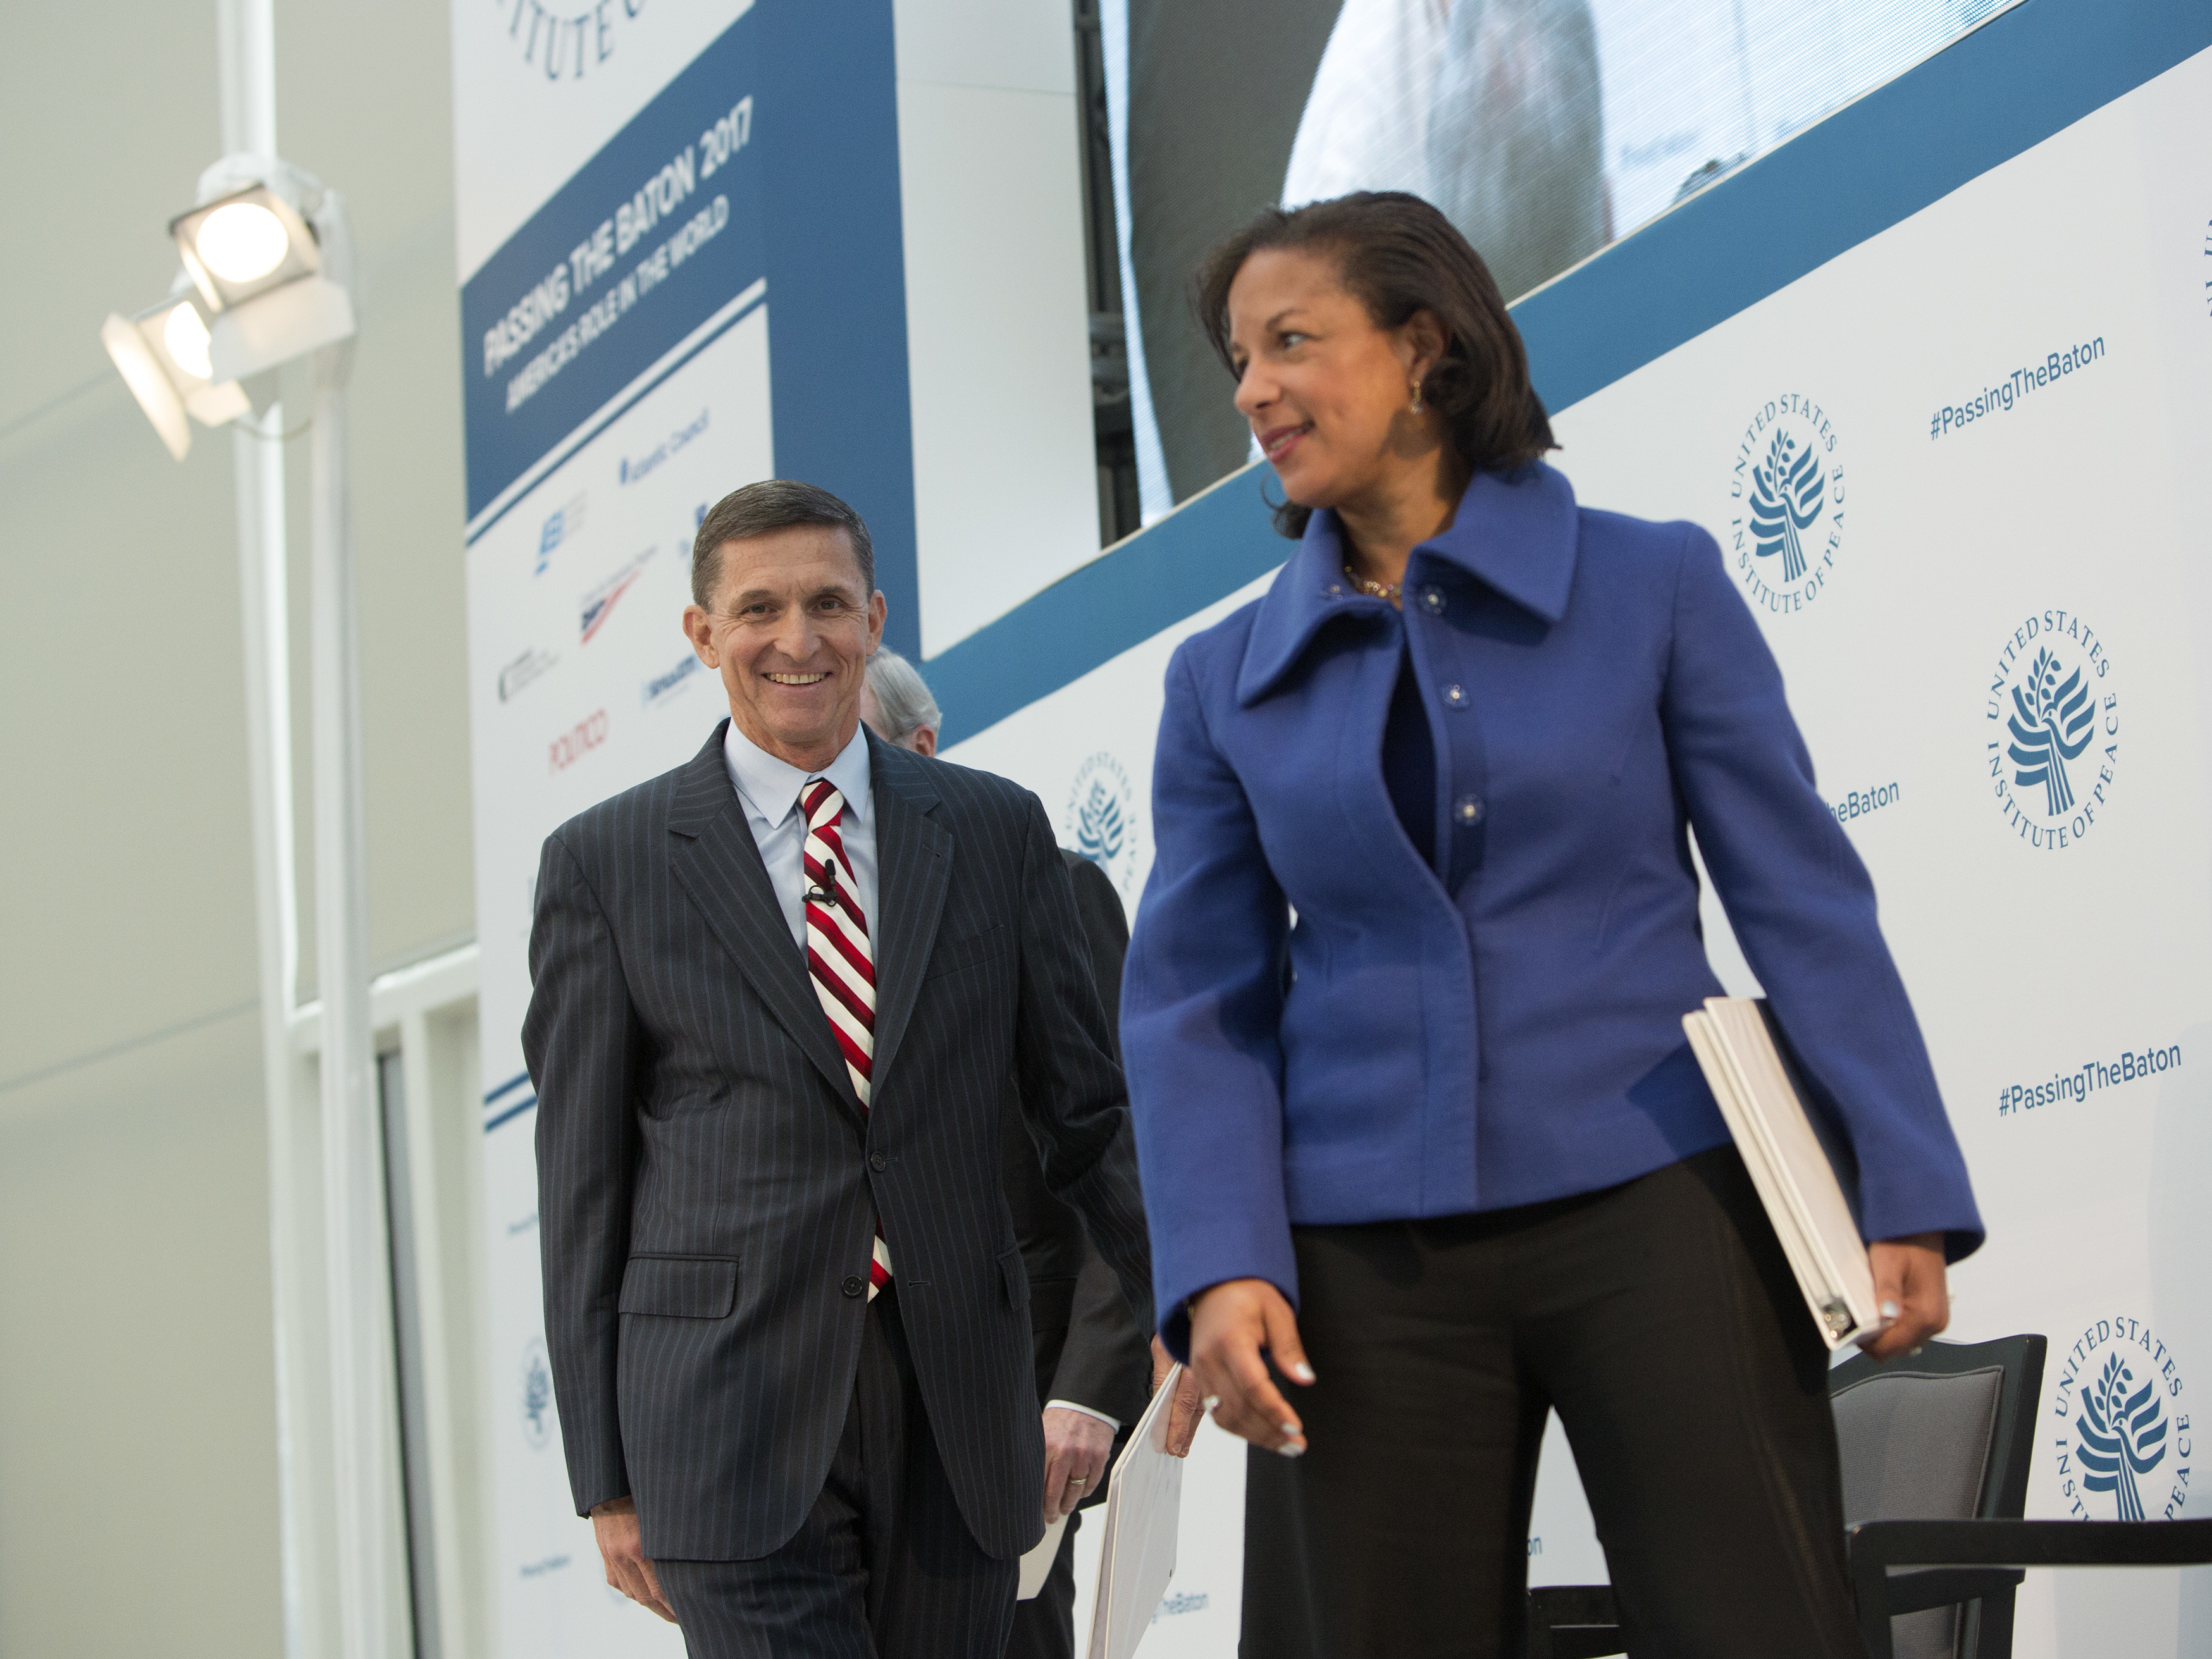 Then-national security adviser-designate Michael Flynn and Ambassador Susan Rice participate in a conference on the transition of the presidency from Barack Obama to Donald Trump at the U.S. Institute of Peace in Washington D.C., on Jan. 10.     (Chris Kleponis/AFP/Getty Images)